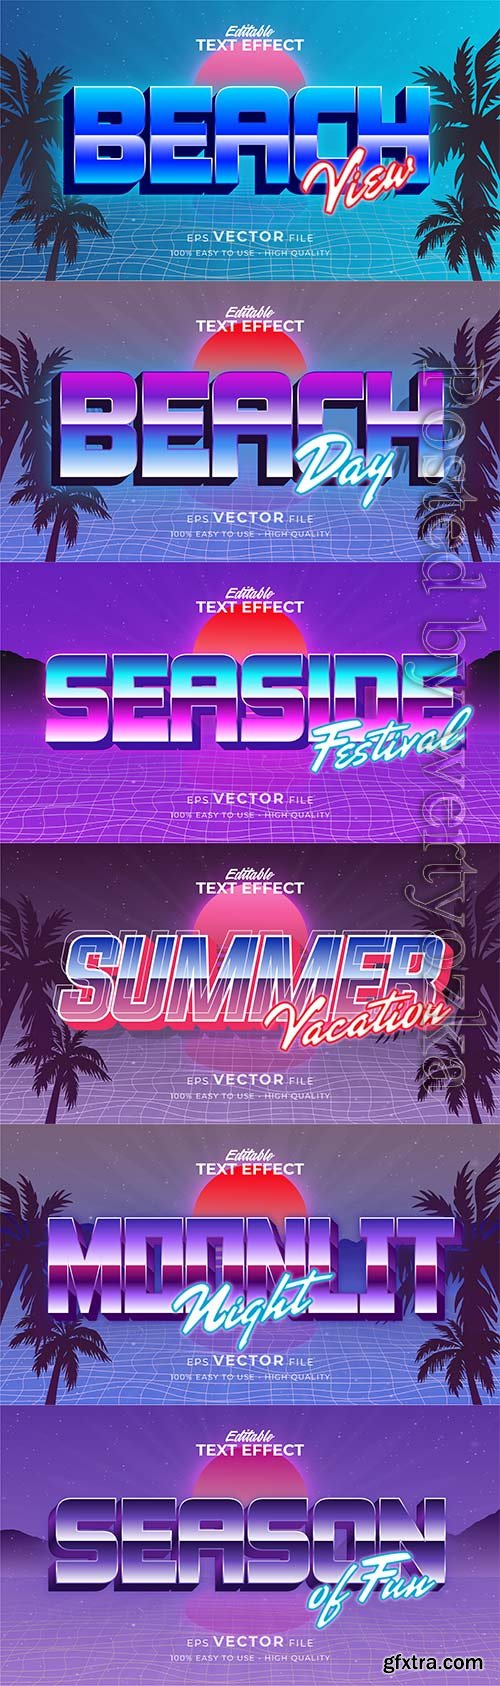 Text style effect, retro summer text in grunge style vol 6